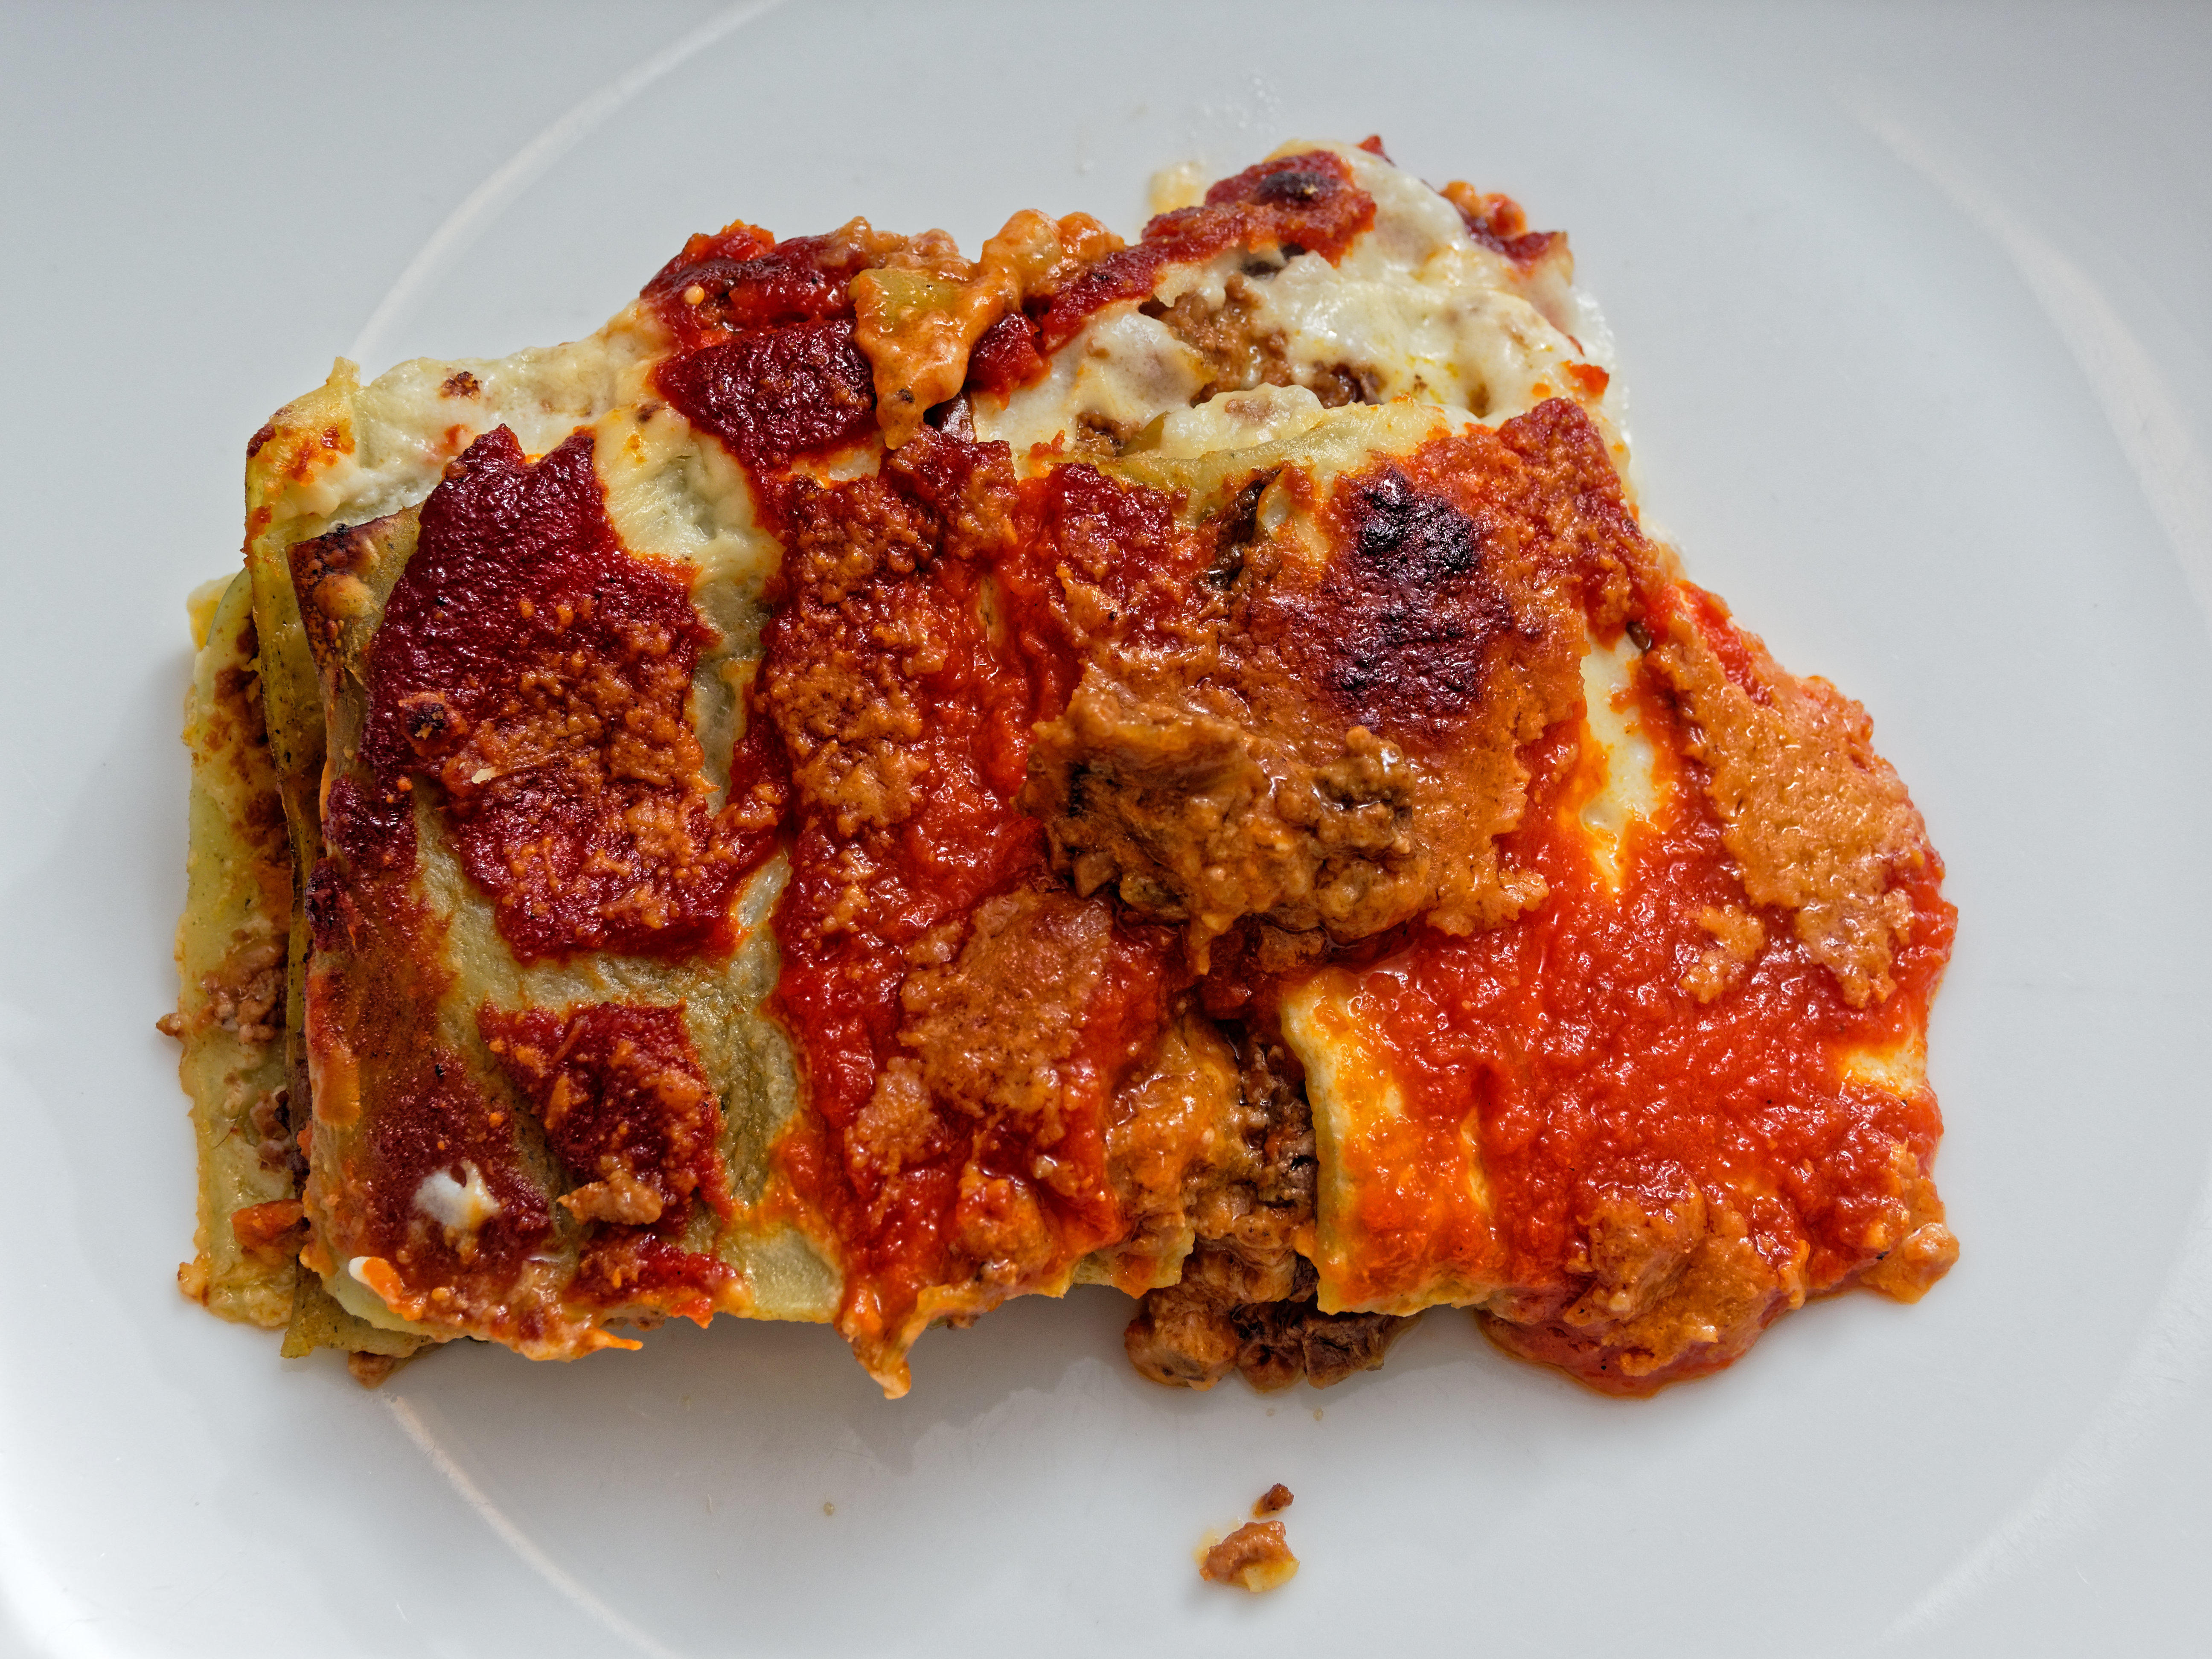 This should be Making-lasagne-22.jpeg.  Is it missing?